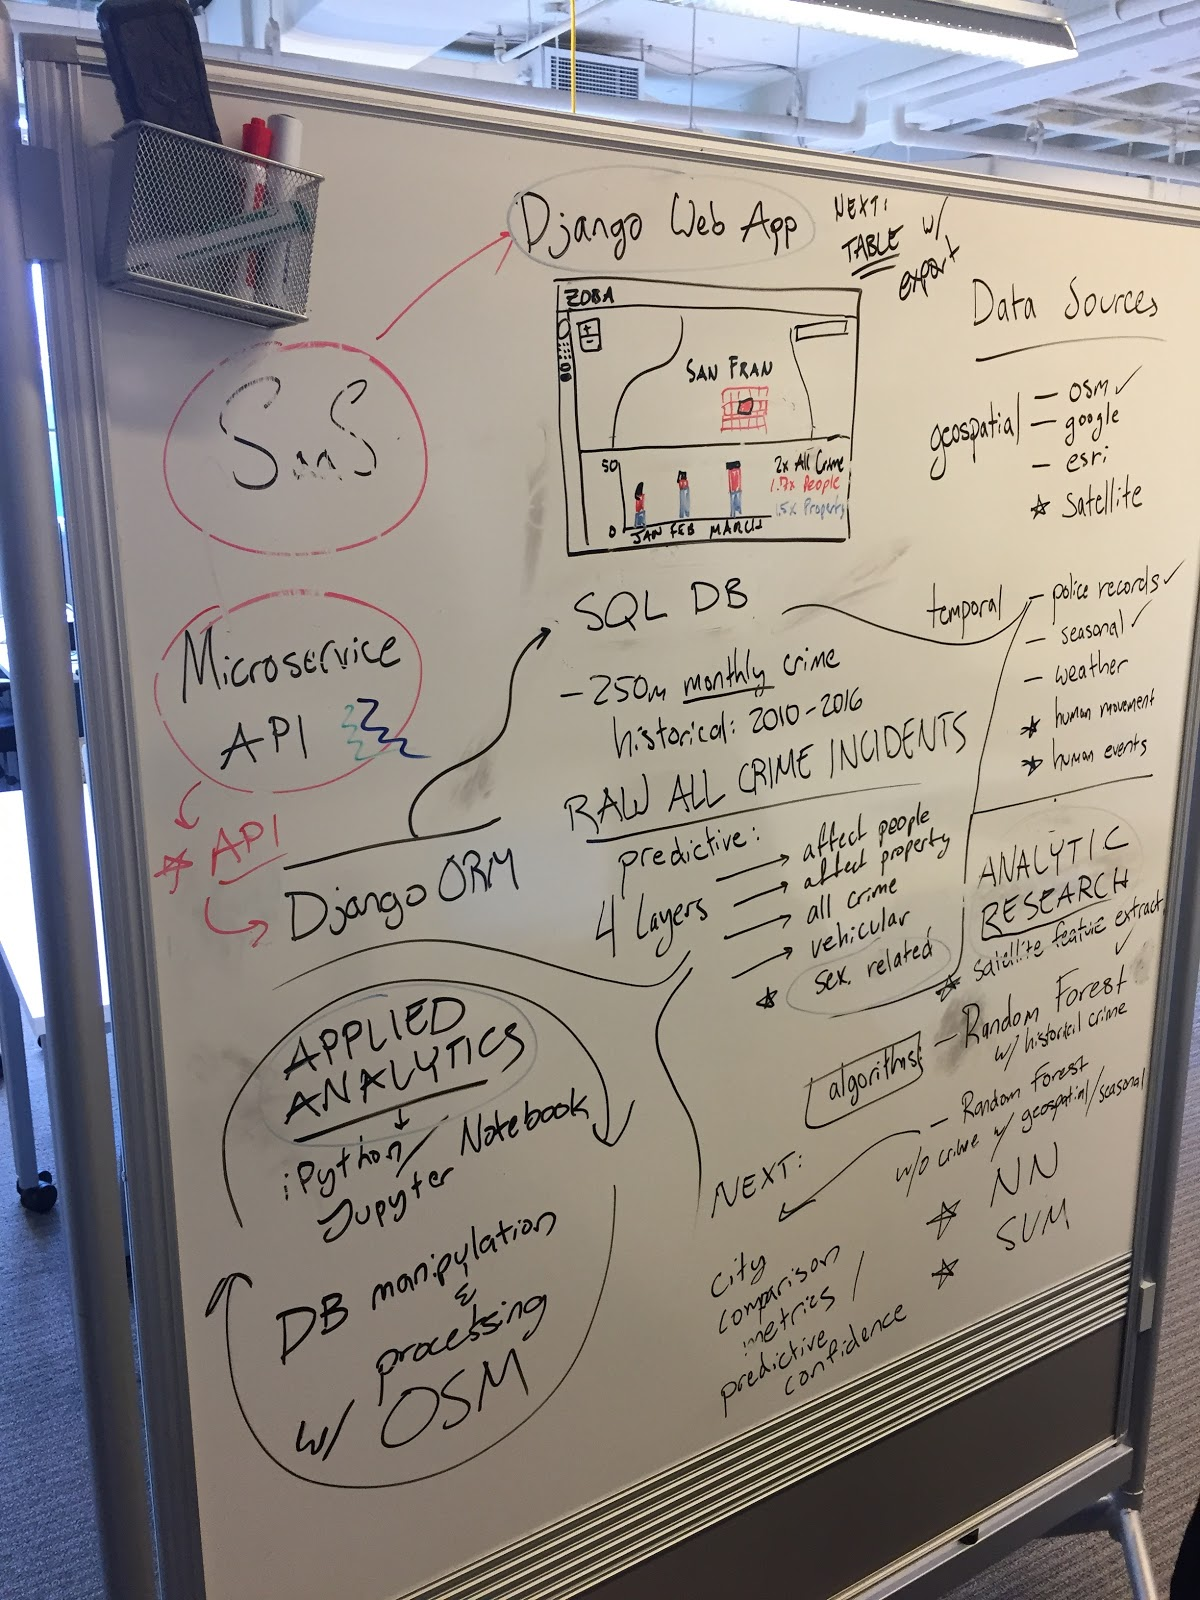 Smaller, portable whiteboards on wheels are ideal for brainstorming, mind mapping and general sharing and communication.